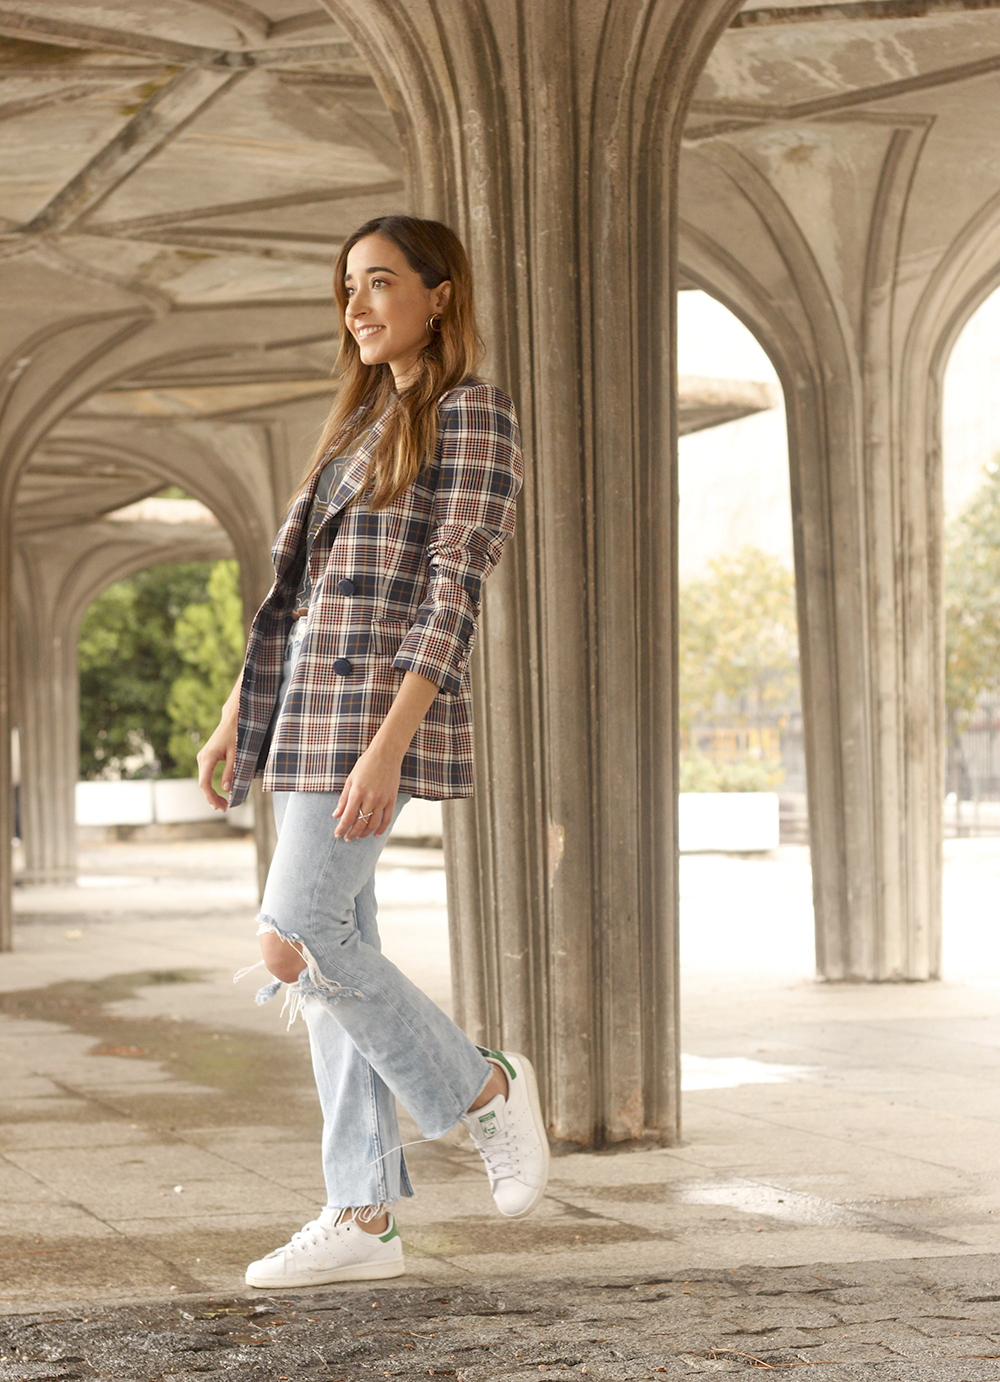 Plaid Blazer ripped jeans adidas stan smith street style outfit 201804